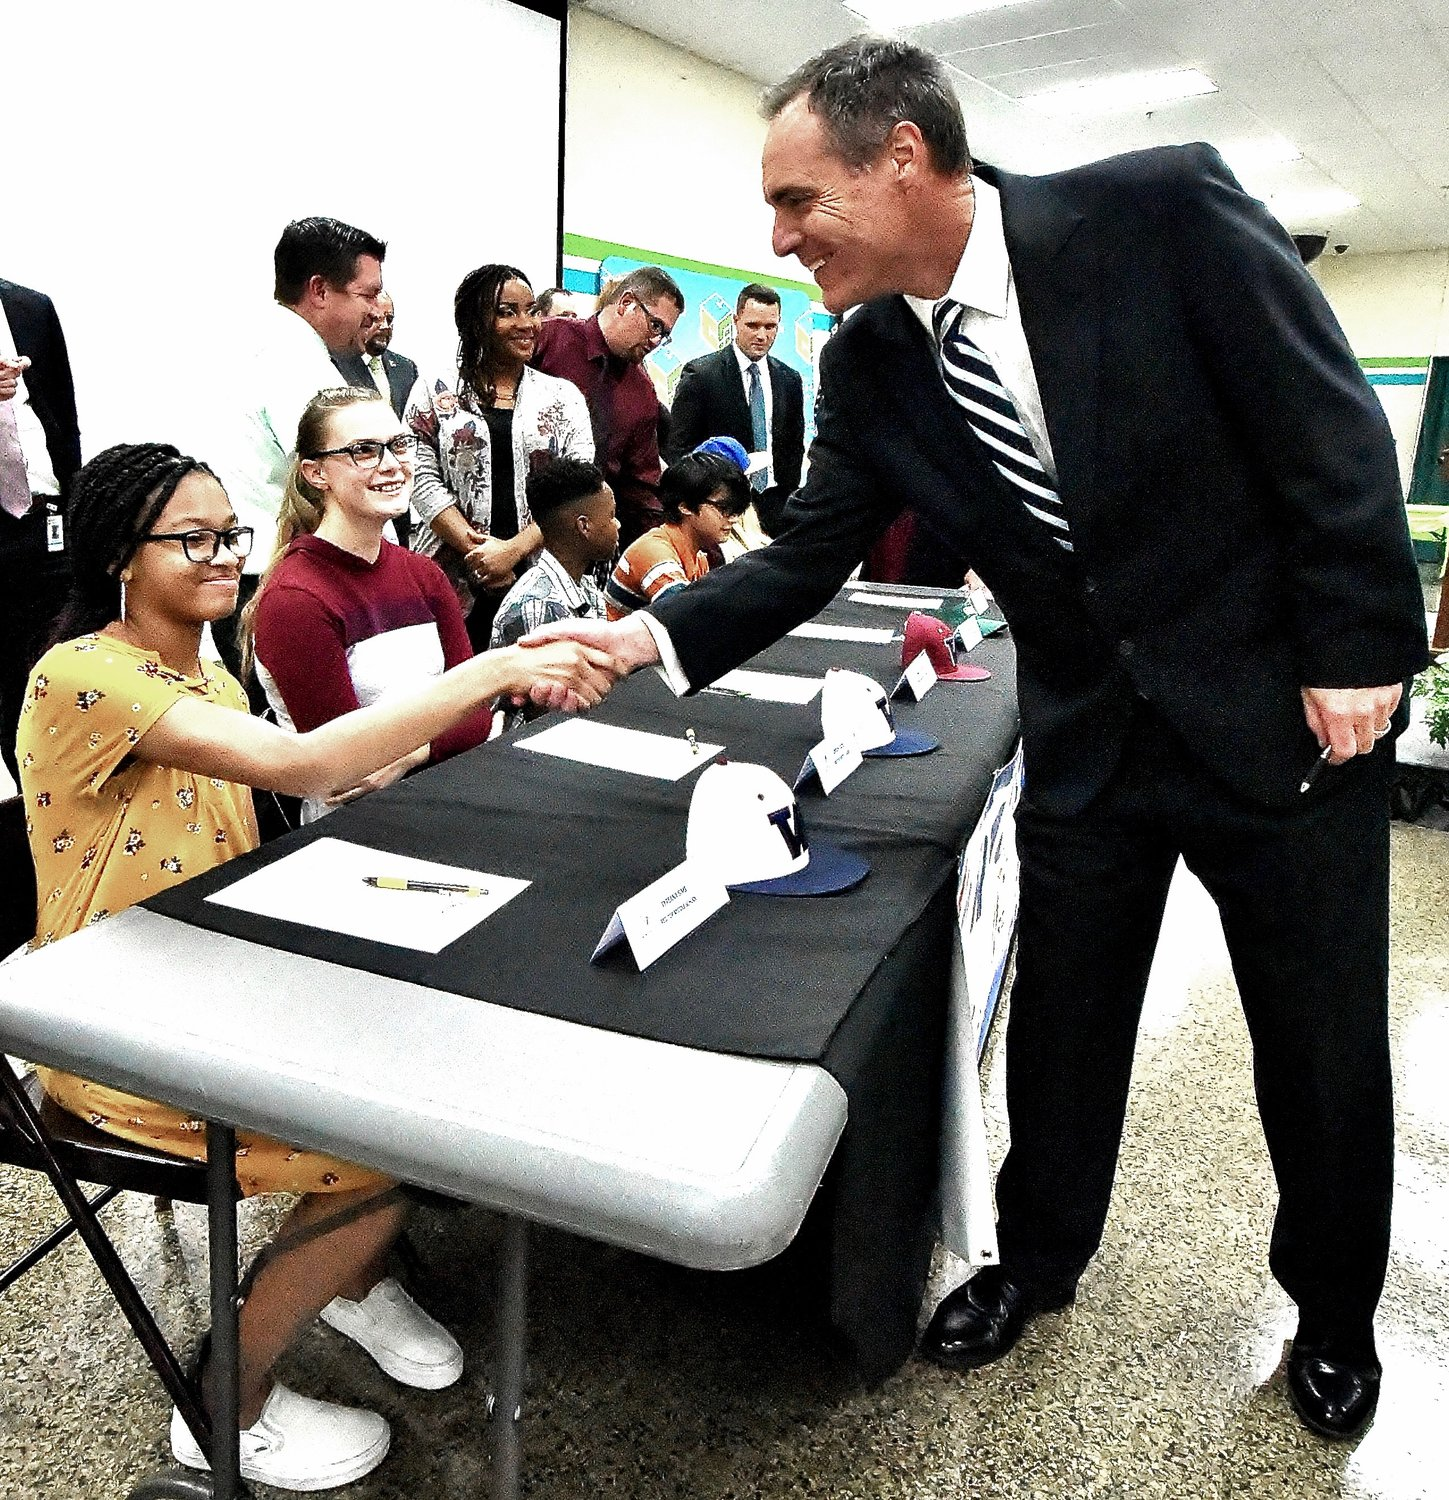 Bartow County School System Superintendent Dr. Phillip Page congratulates Red Top Middle School eighth grader Tyreana Sims after she signed her REACH Scholarship contract Thursday at the REACH Scholarship signing ceremony at the Bartow County College & Career Academy.